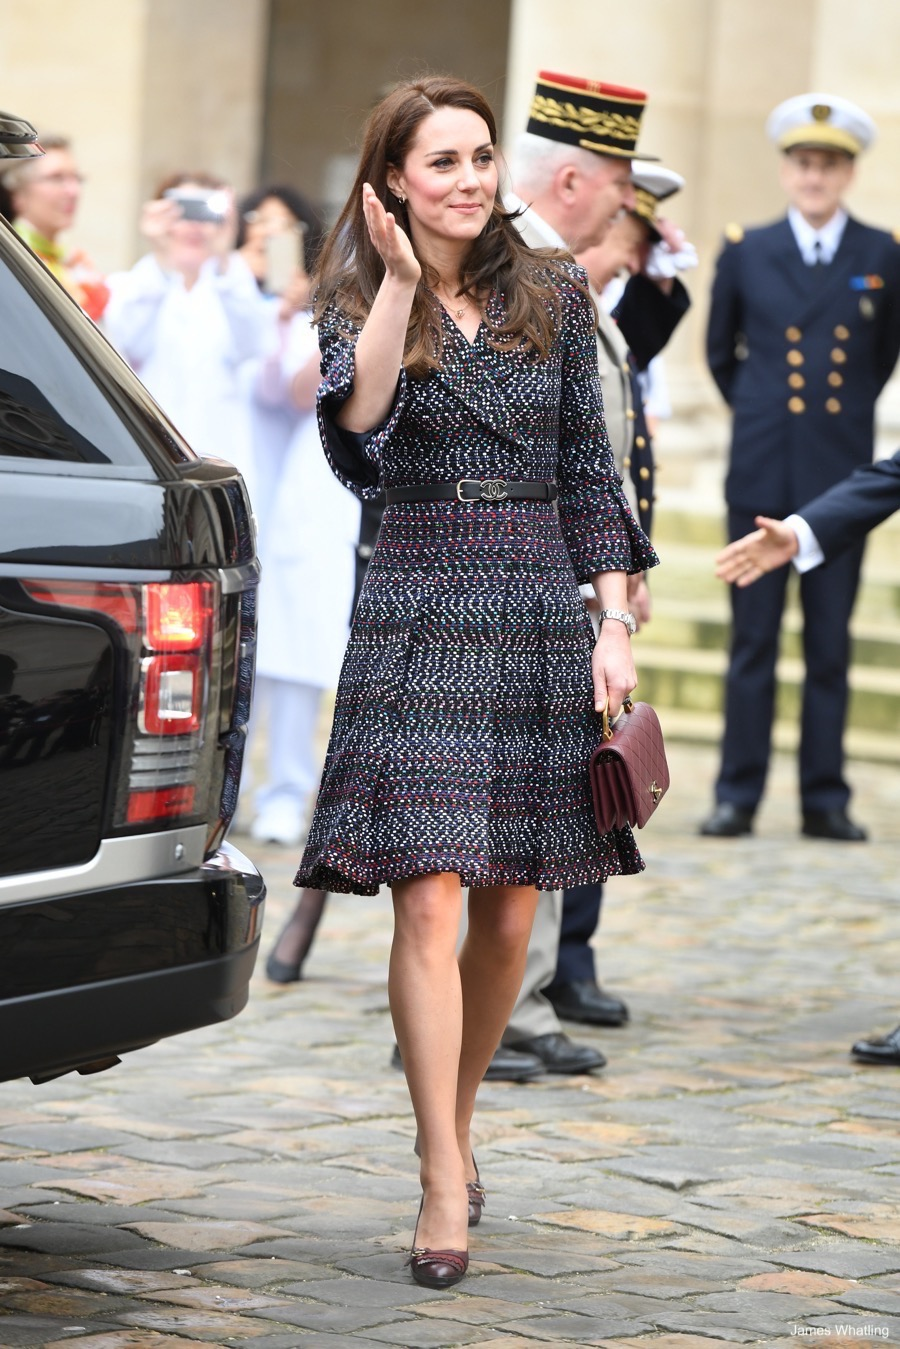 Kate 39 S Outfits In Paris France Kate Middleton Style Blog